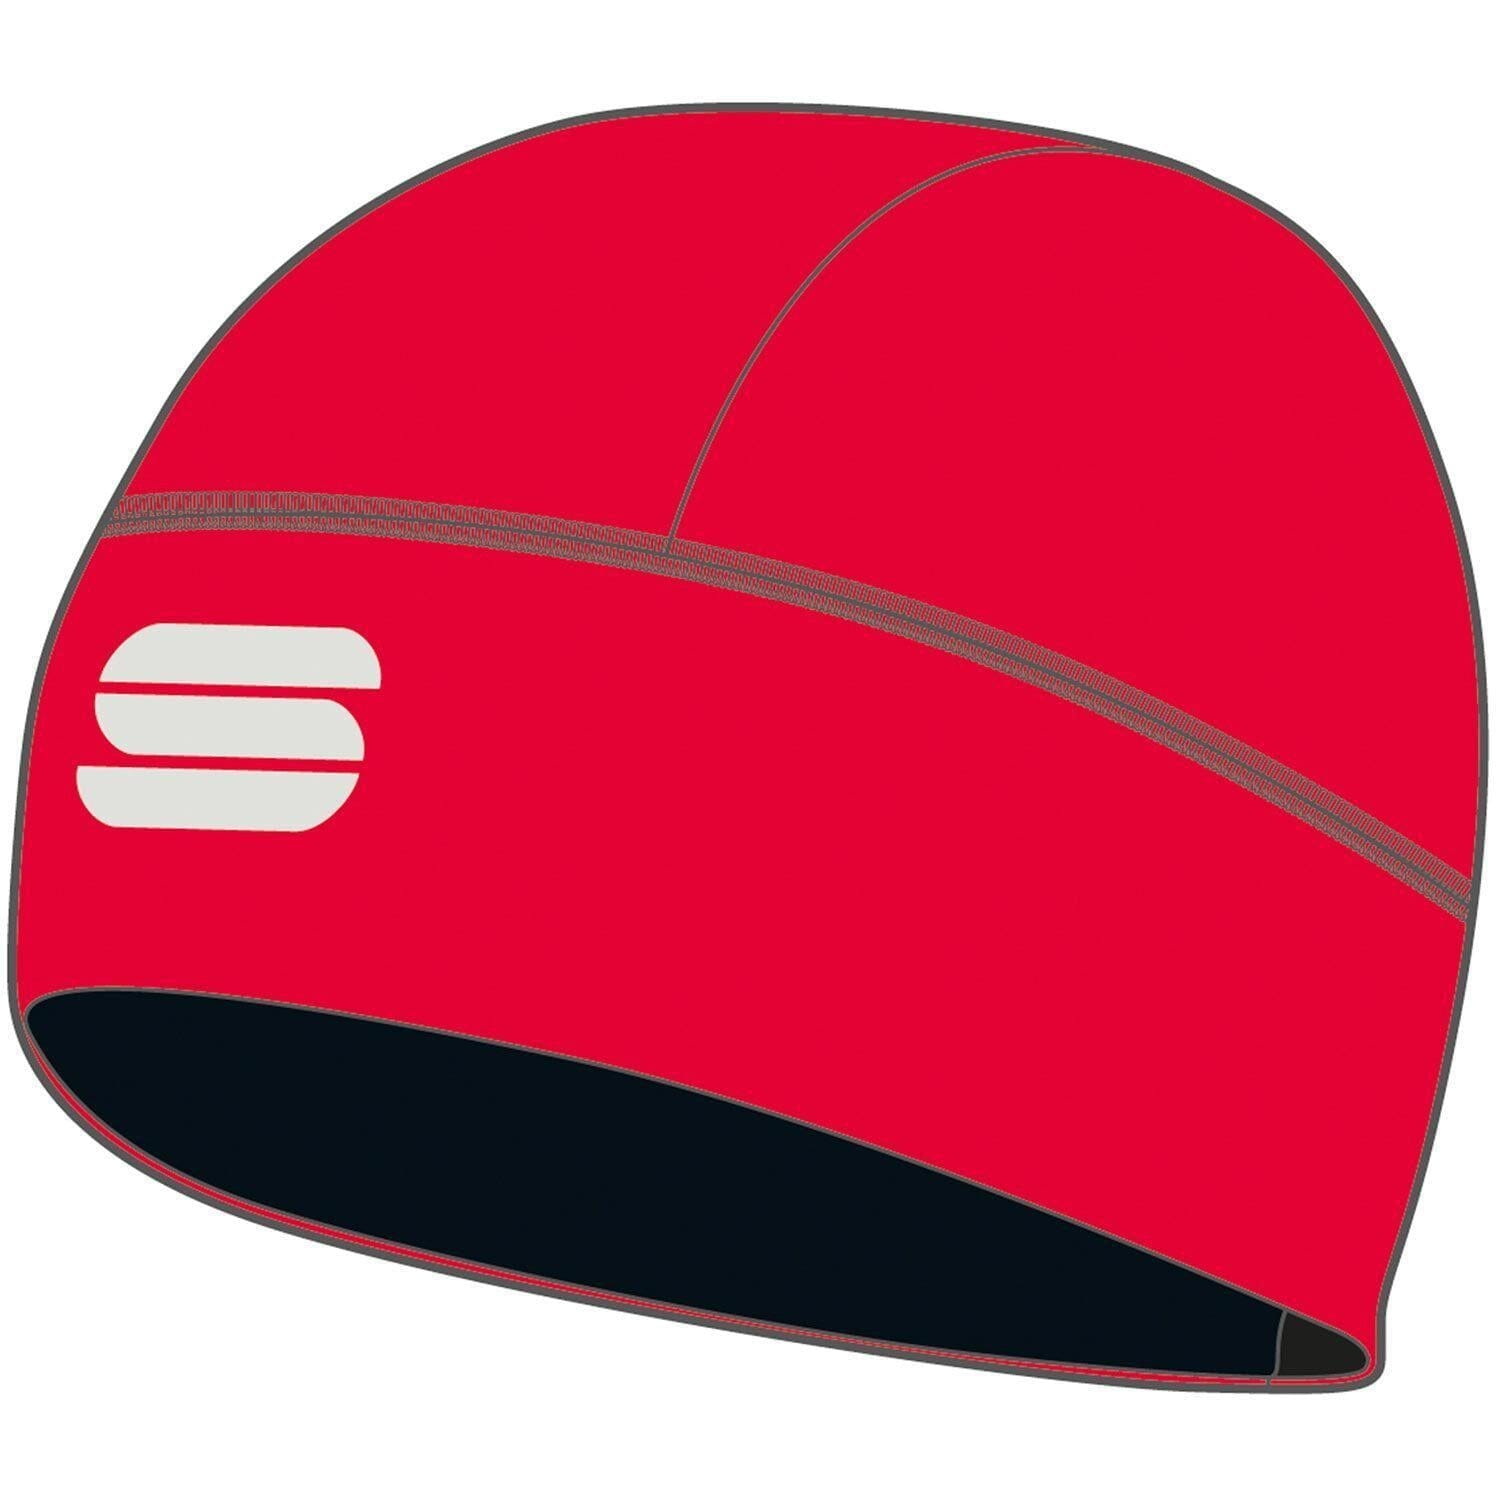 Sportful-Sportful Matchy Underhelmet-Red-UNI-SF210755678-saddleback-elite-performance-cycling